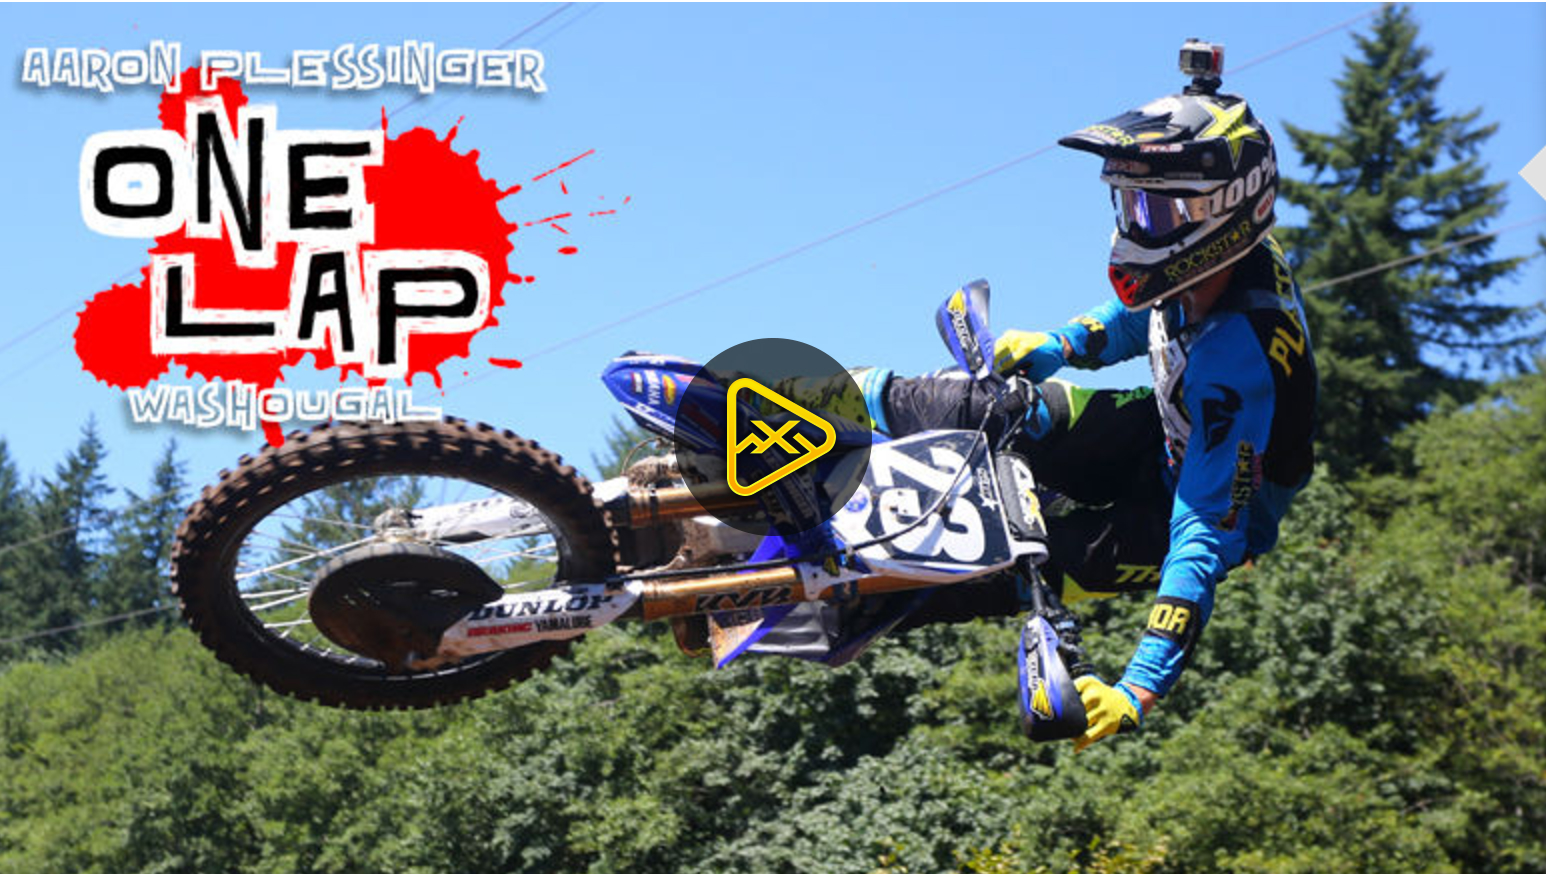 Helmet Cam: One Lap with Plessinger at Washougal